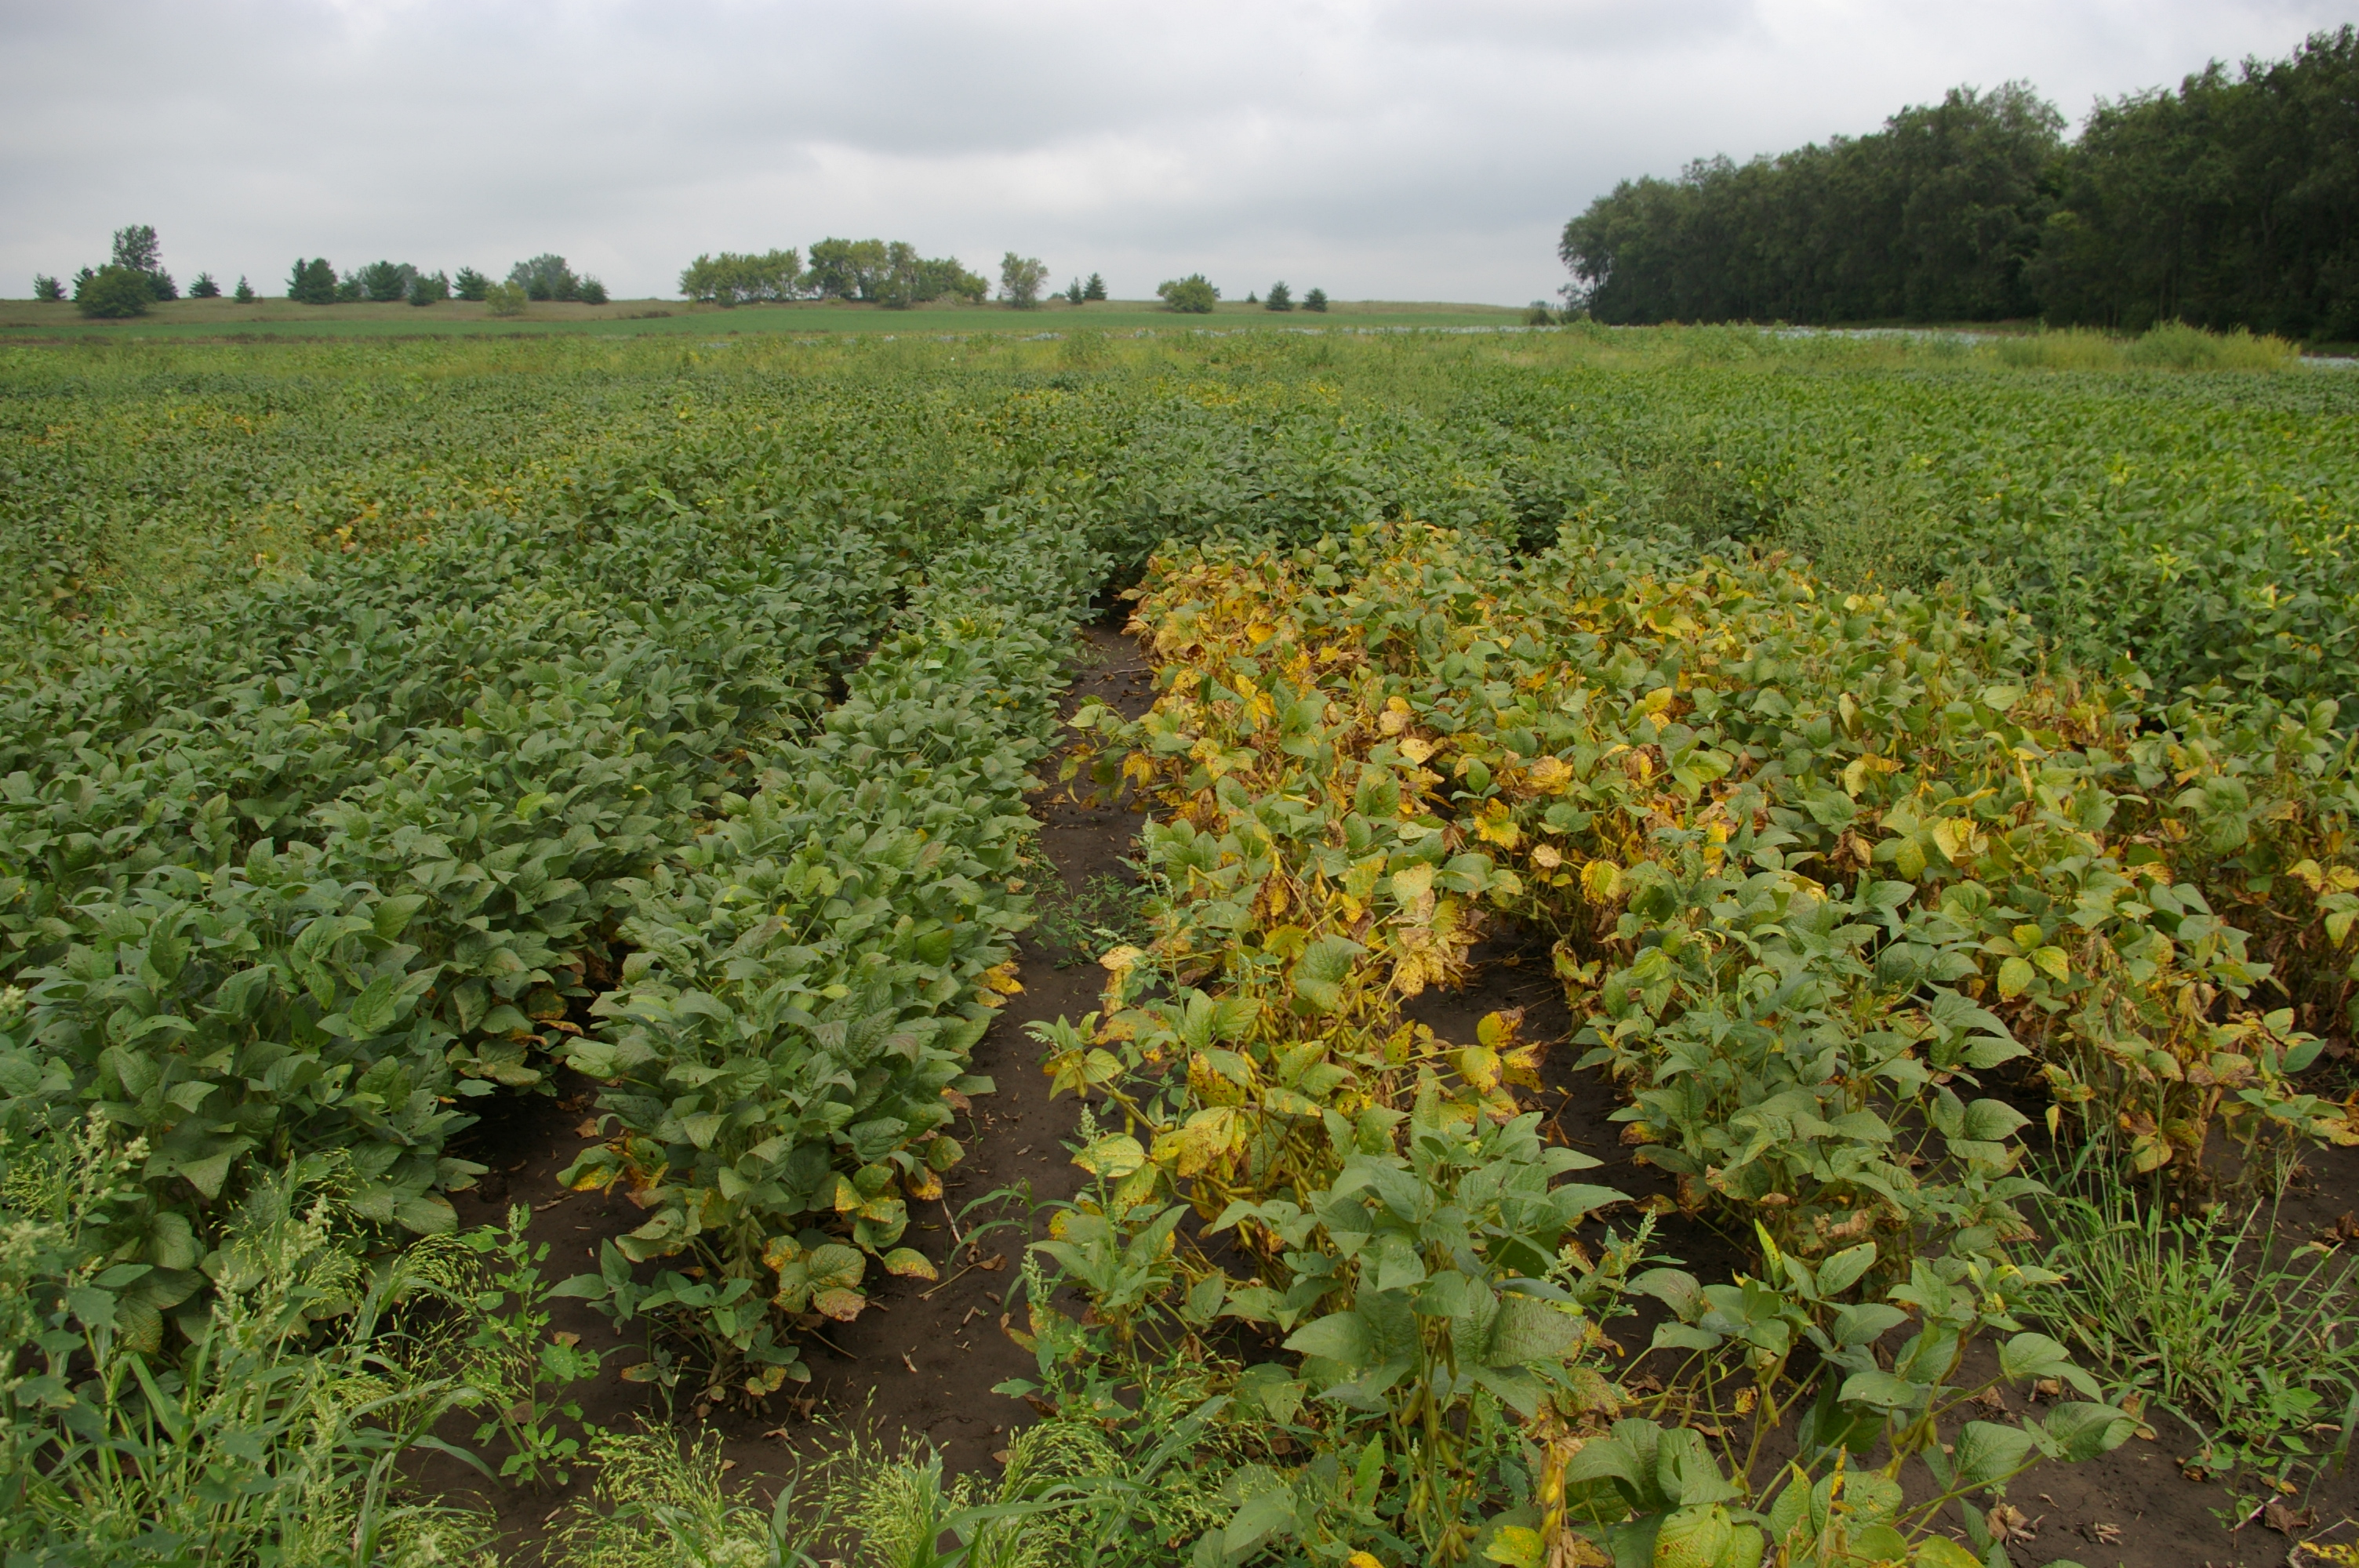 Soybean varieties differ in susceptibility to Septoria brown spot.